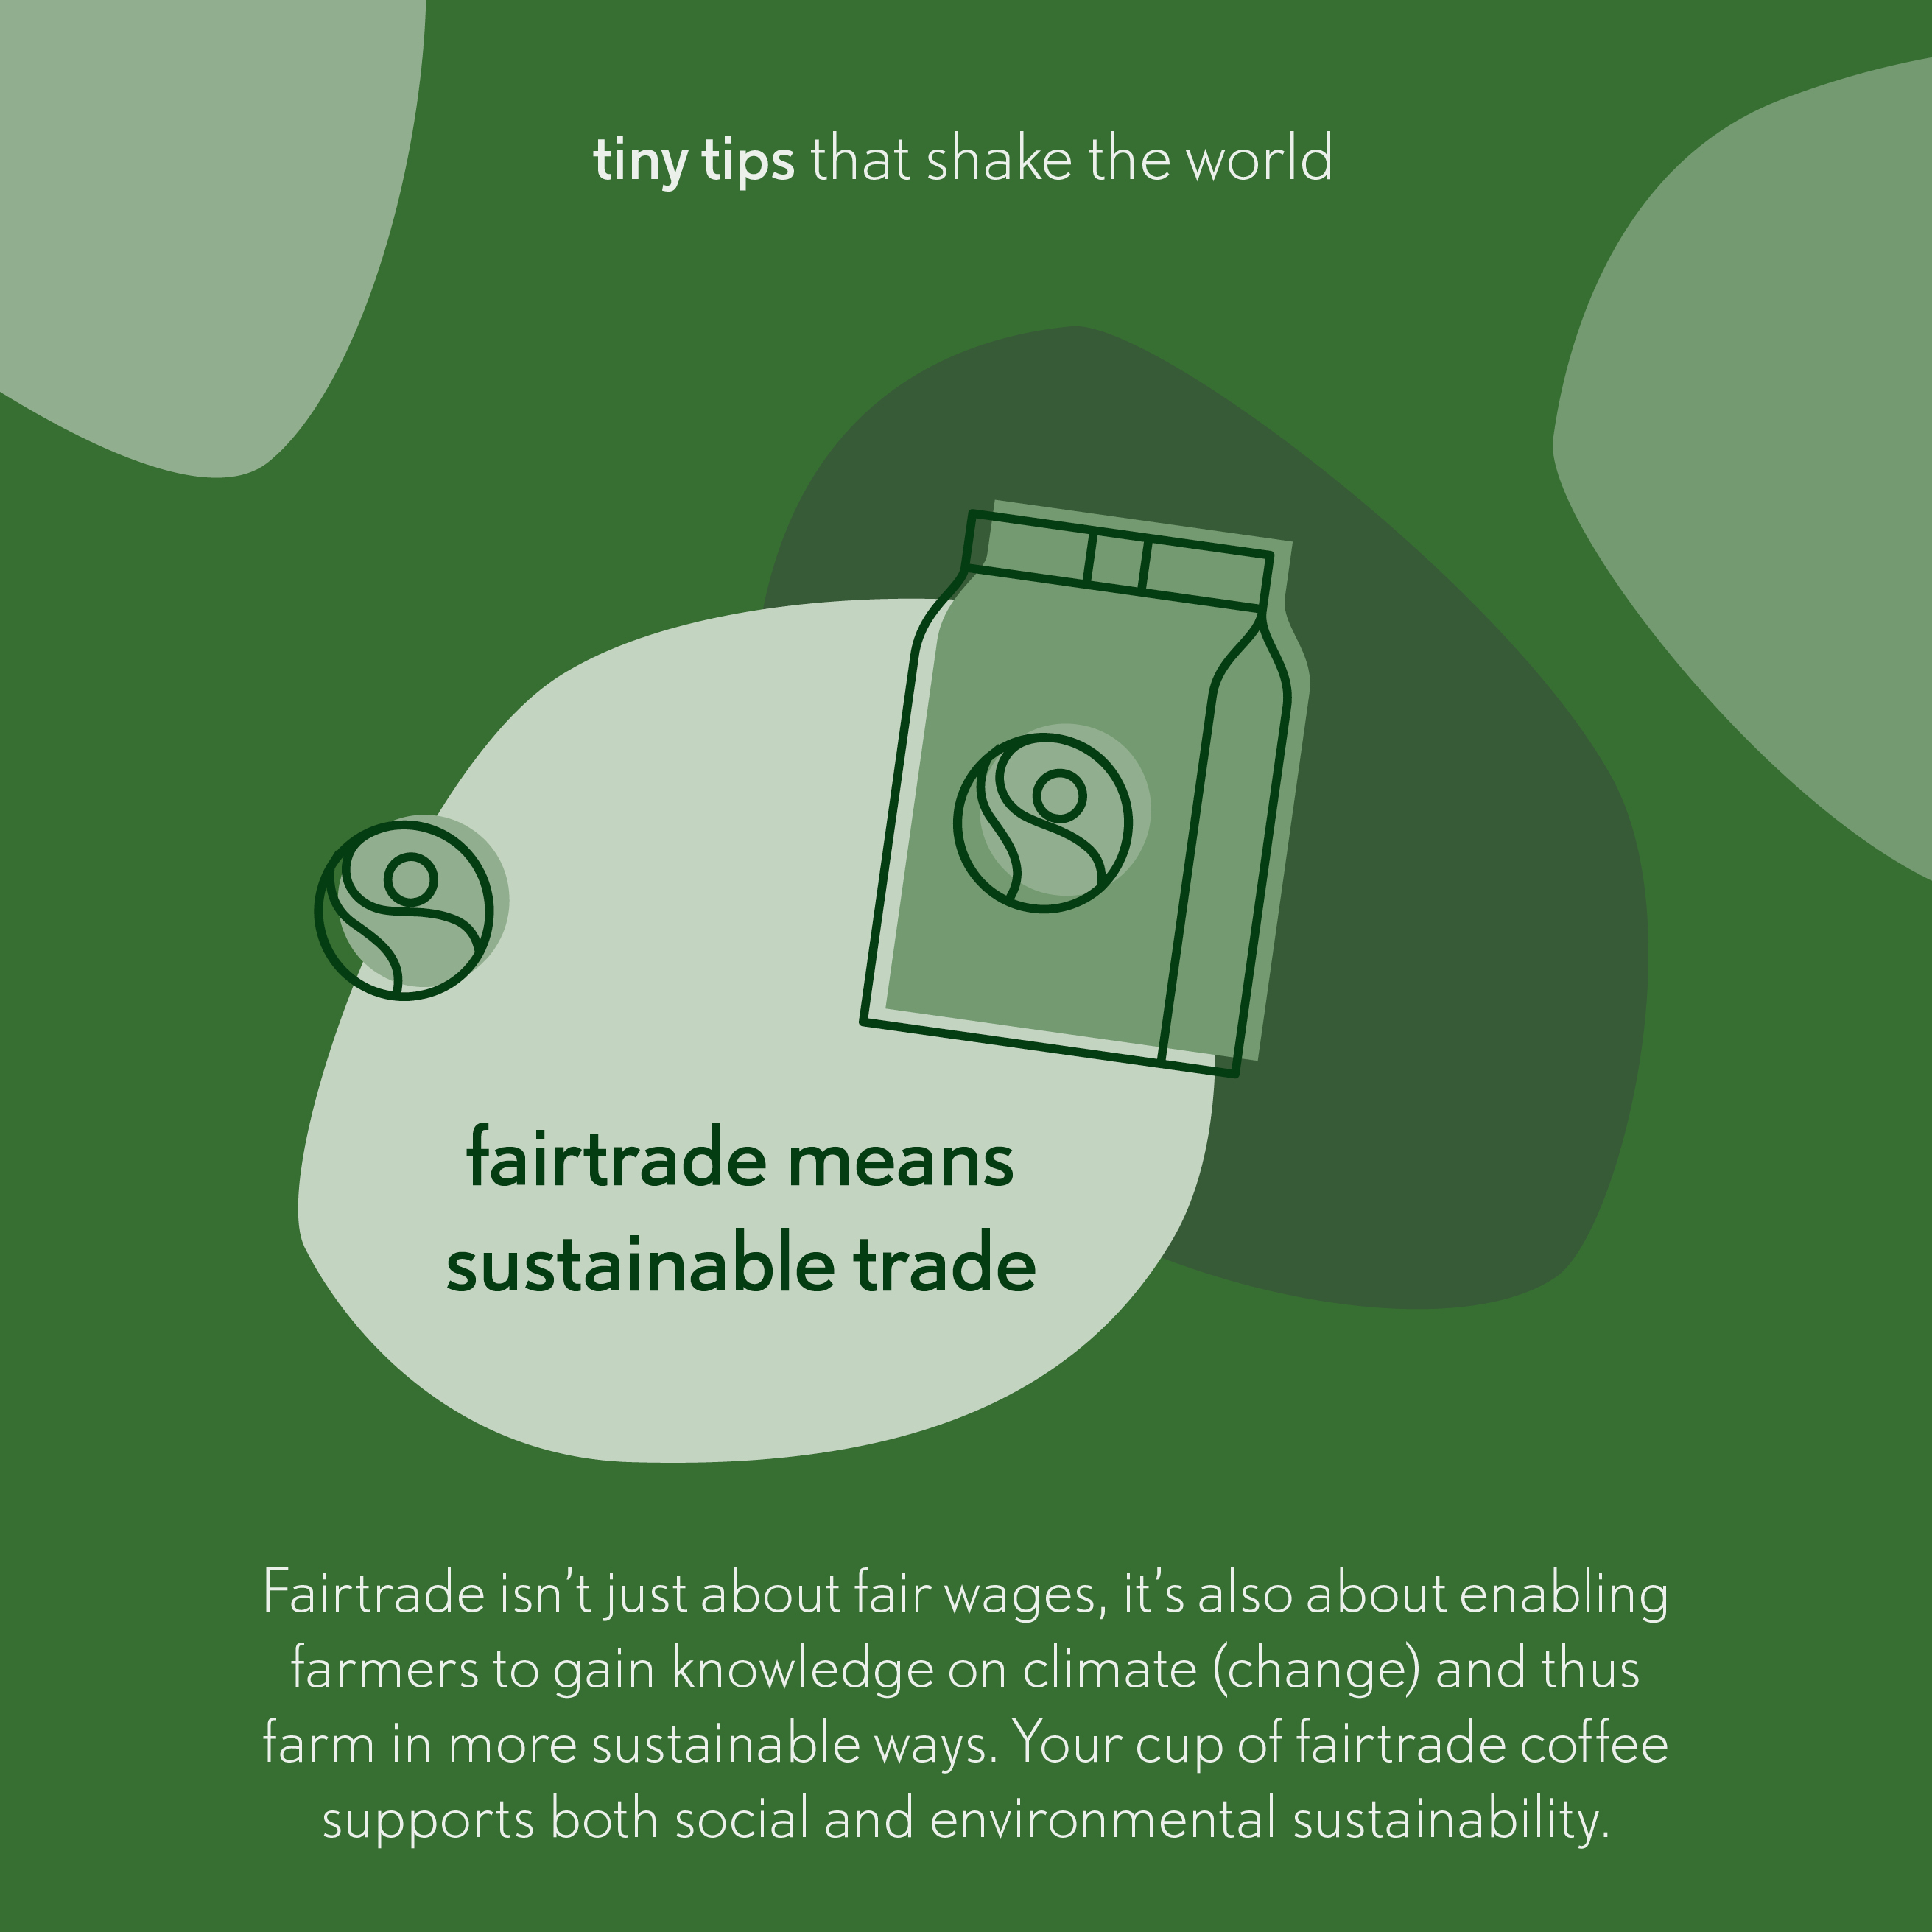 20190226 Fairtrade means sustainable trade